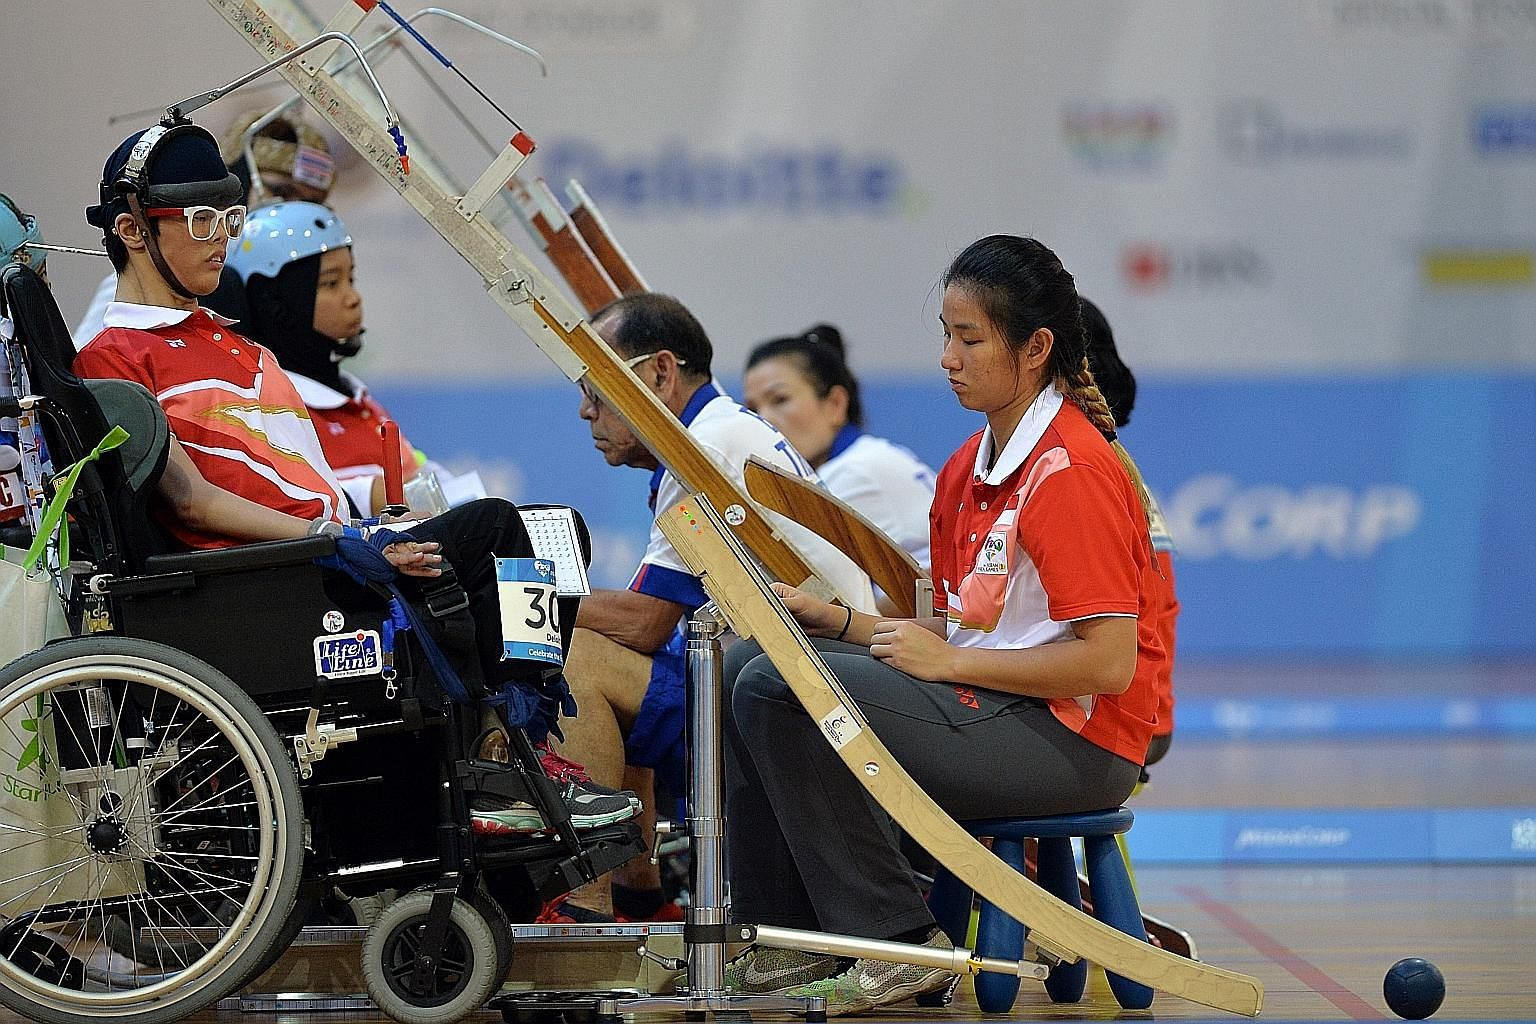 Toh Sze Ning (front) and Nurulasyiqah Mohammad Taha had to settle for silver after losing to Thailand's Tanimpat Visaratanunta and Ekkarat Chaemchoi in the boccia BC3 mixed pair category yesterday.